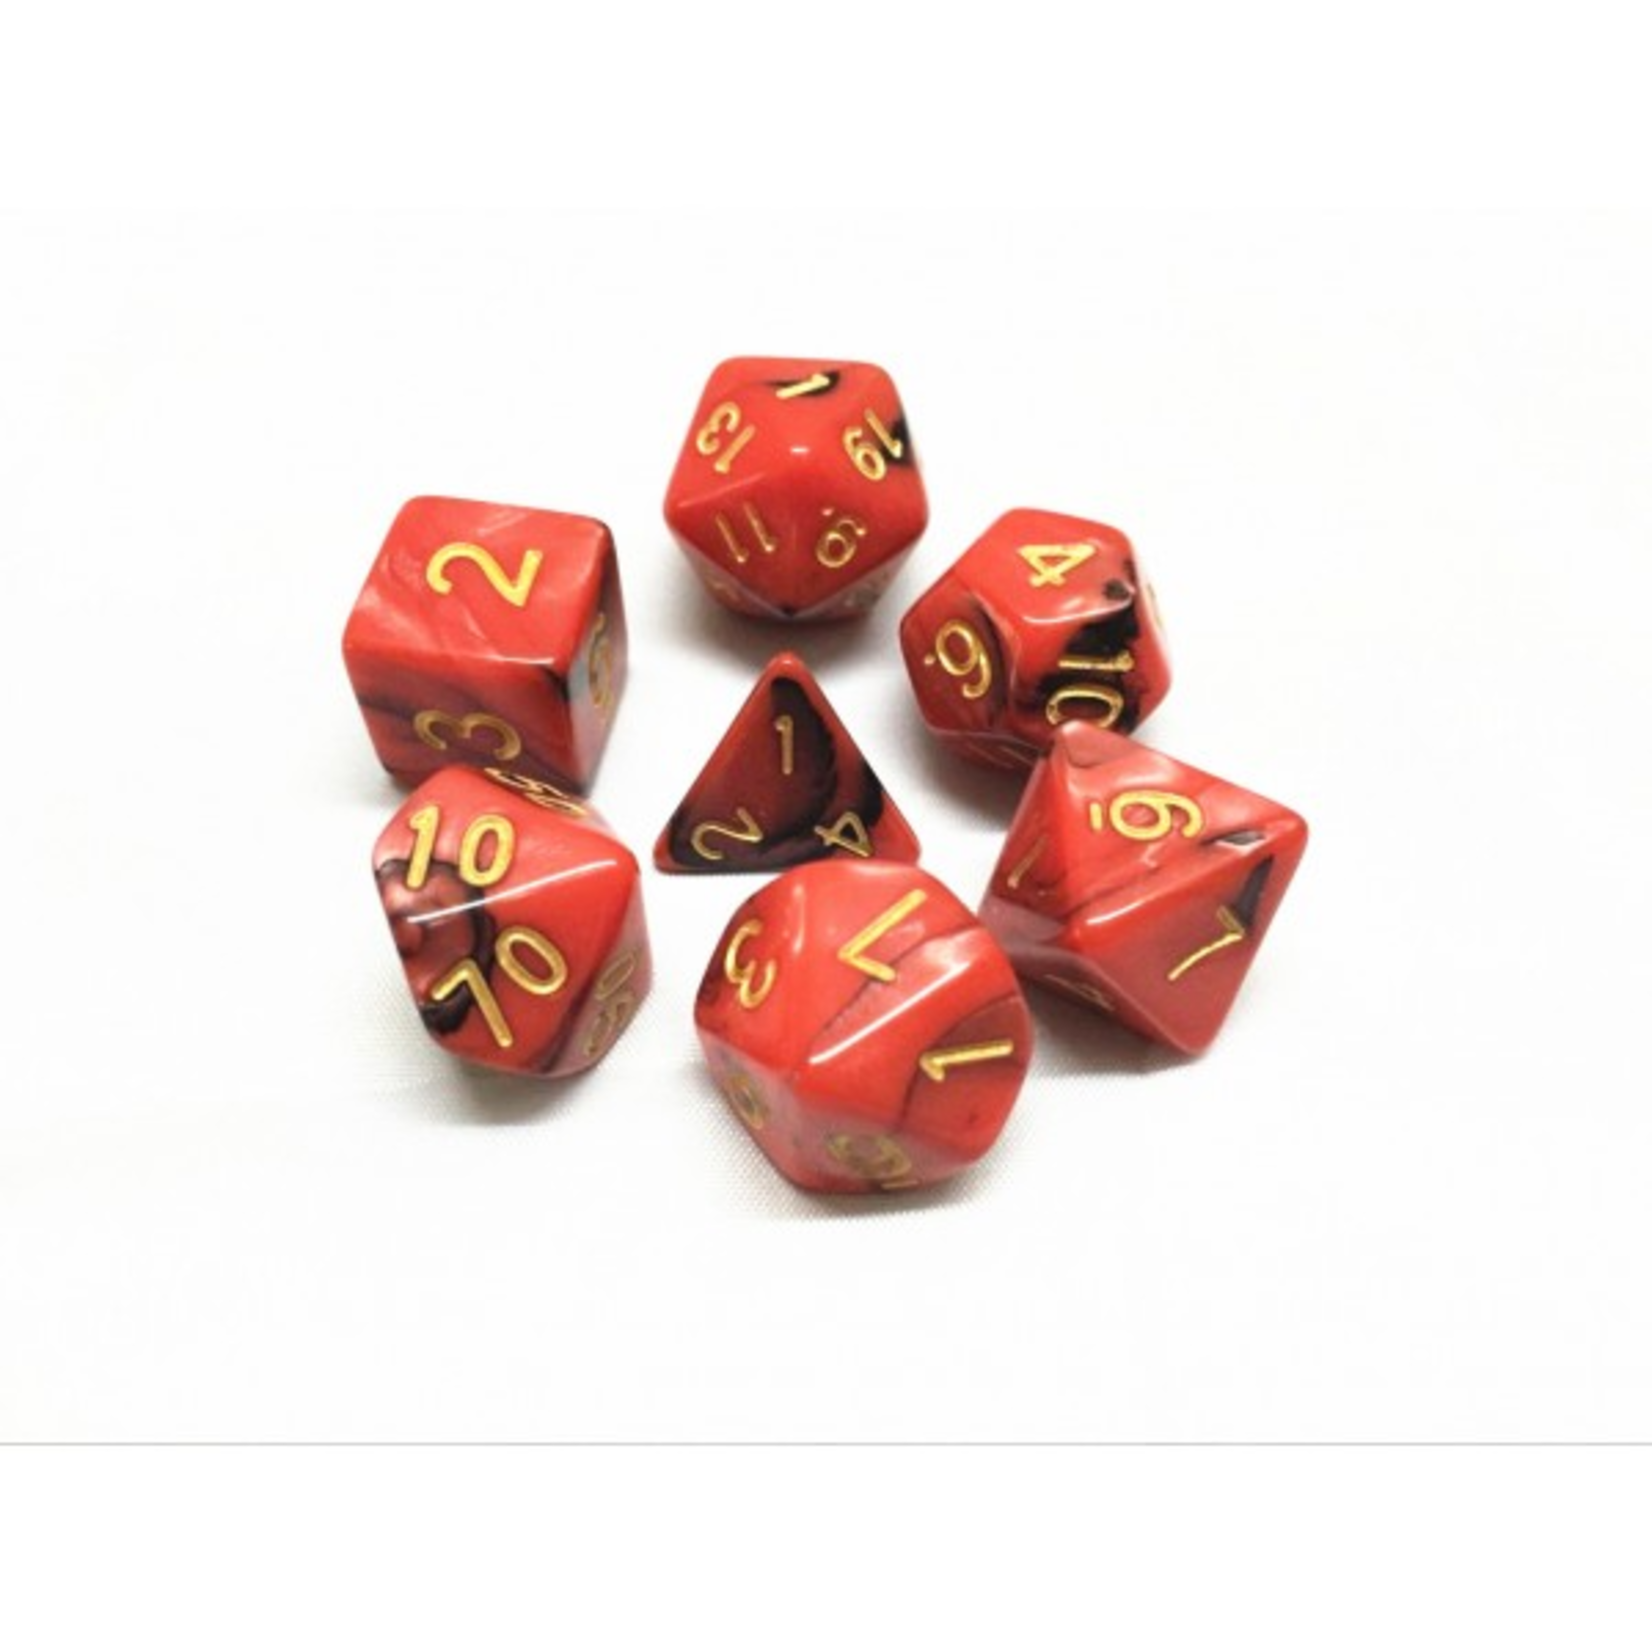 HD Dice Dice: 7-Set Blend Red and Black with Gold Numbers (HD)